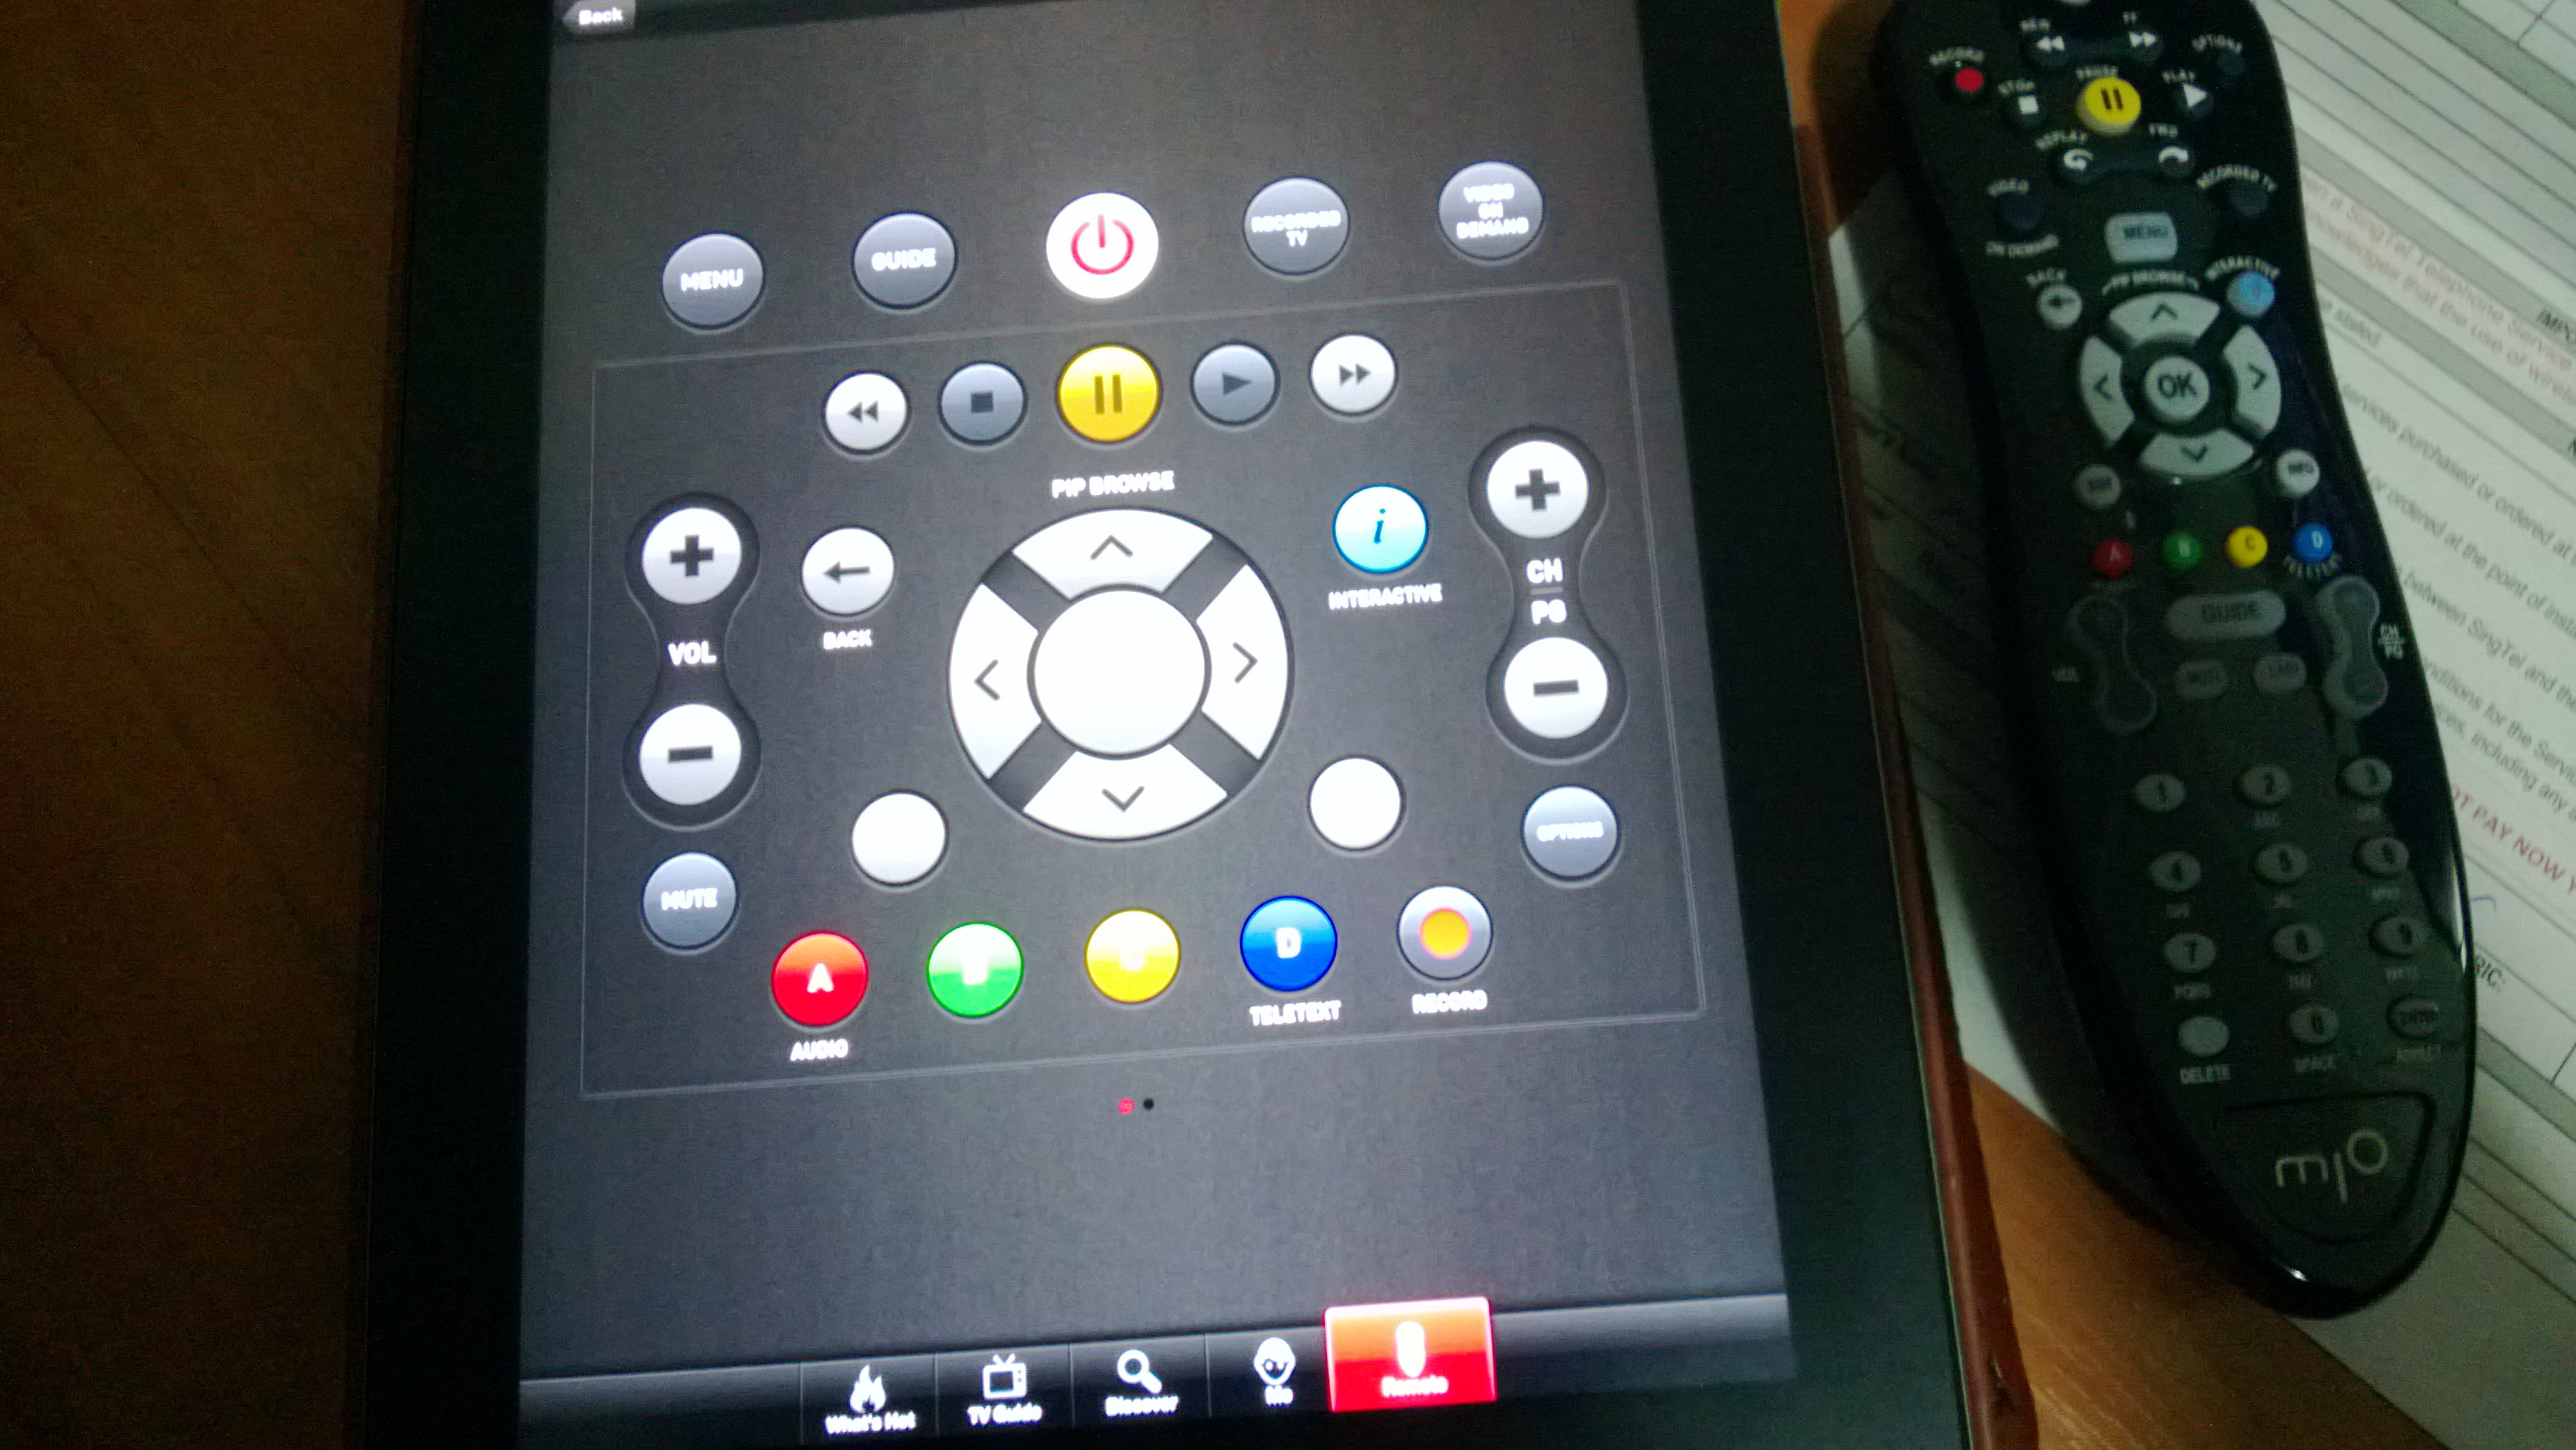 How to pair MioTV Go App with your Set Top Box? | NIZAM PLAYS